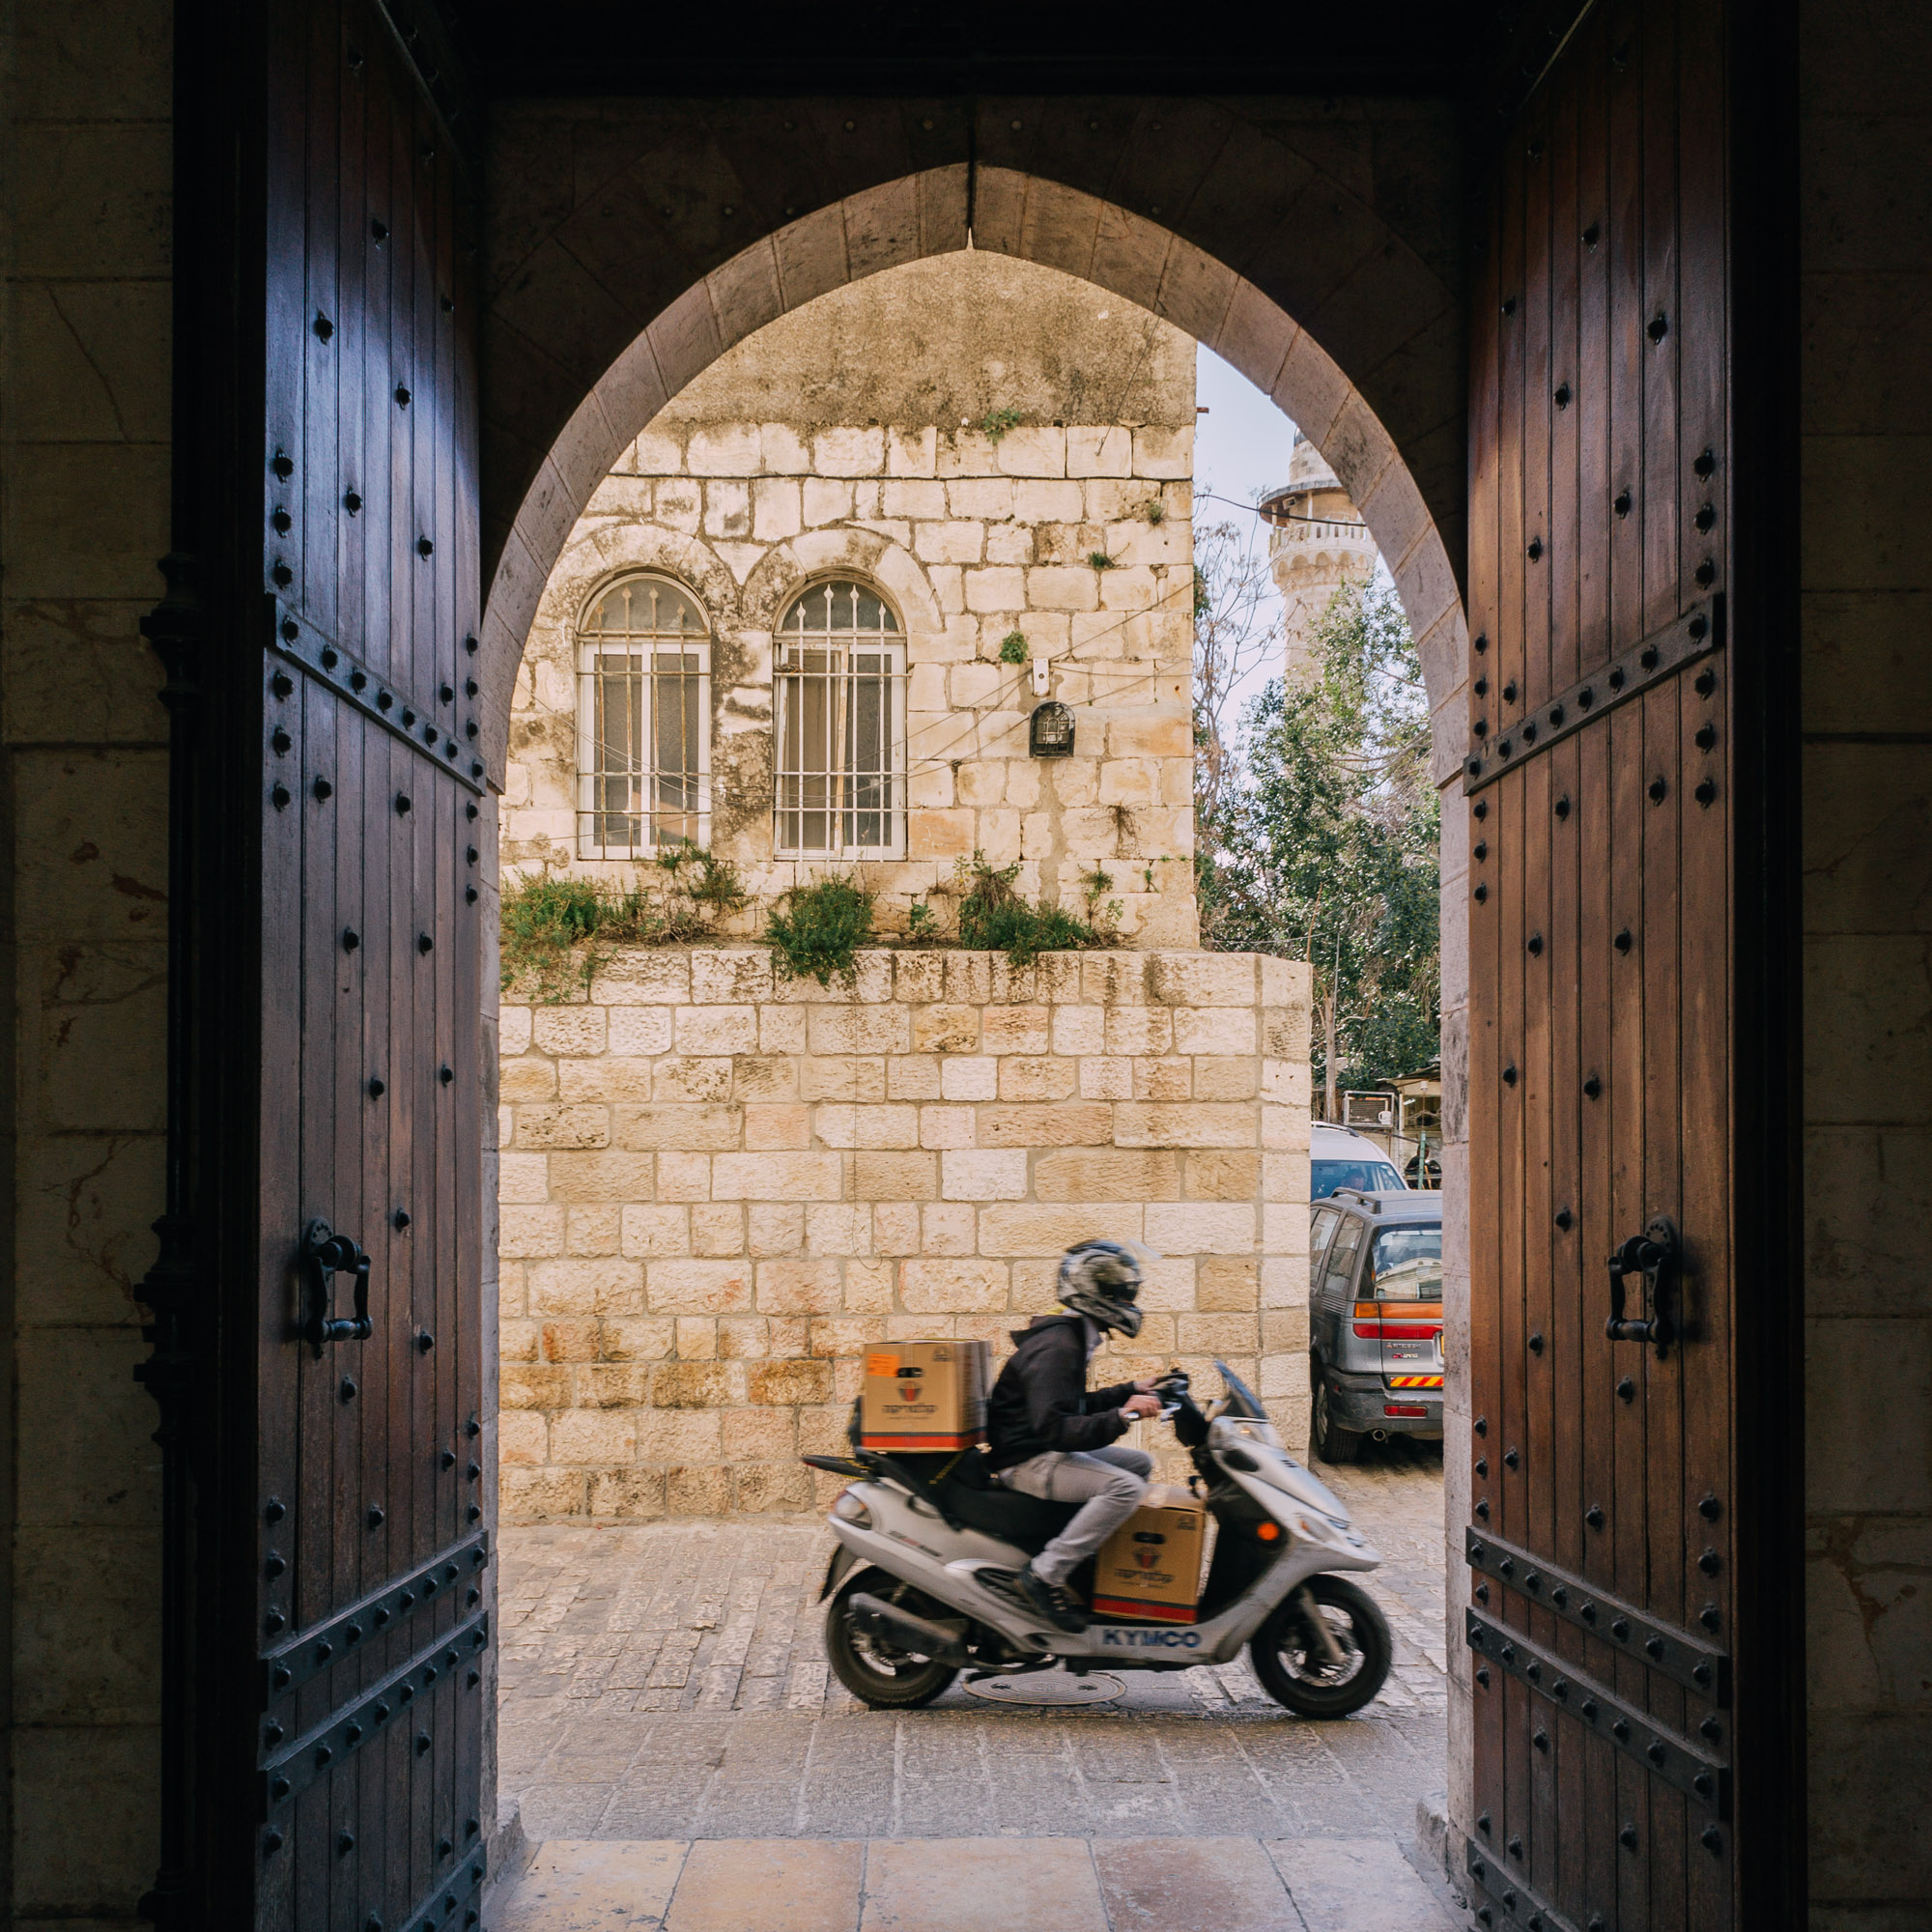 Israël: 5 highlights pour t'en mettre plein la vue — Jérusalem — Voyage — Jeff On The Road — All photos are under Copyright  © 2019 Jeff Frenette Photography / dezjeff. To use the photos, please contact me at dezjeff@me.com.